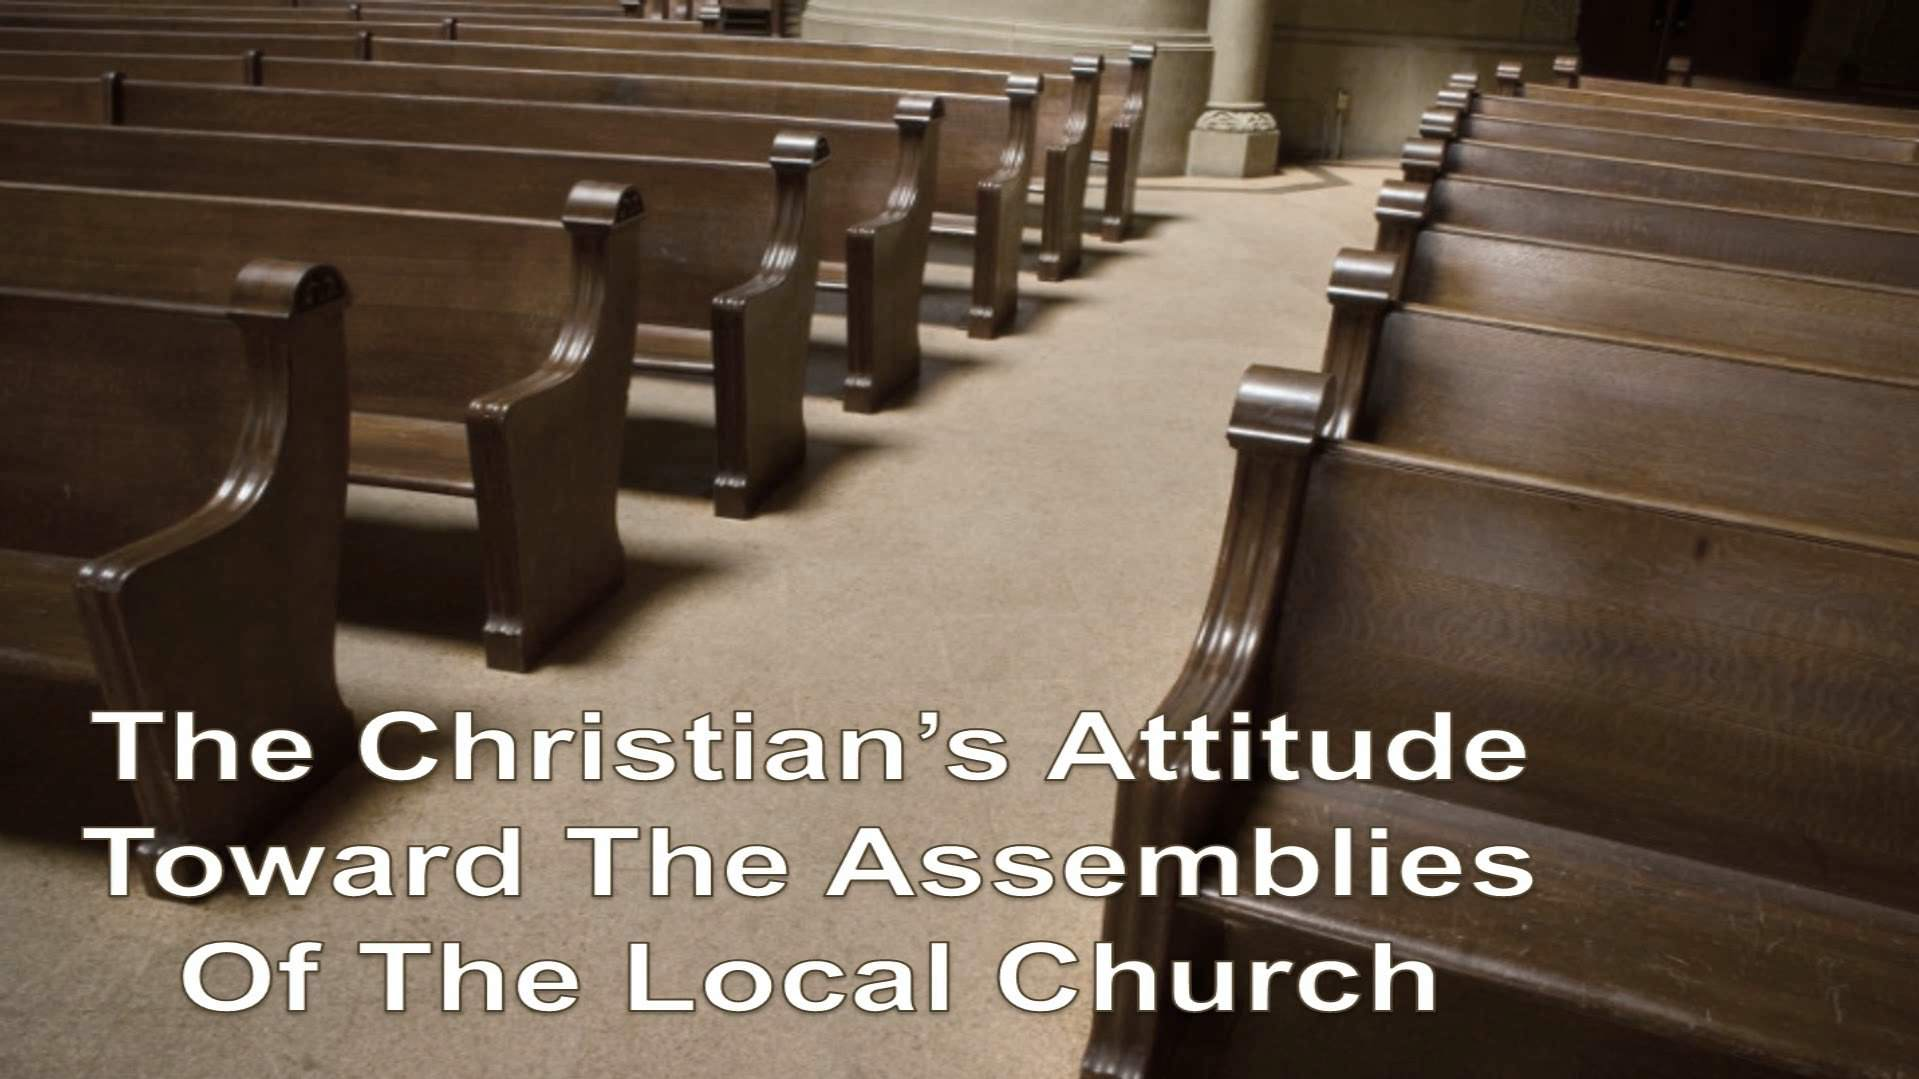 The Christian's Attitude Toward The Assemblies Of The Local Church